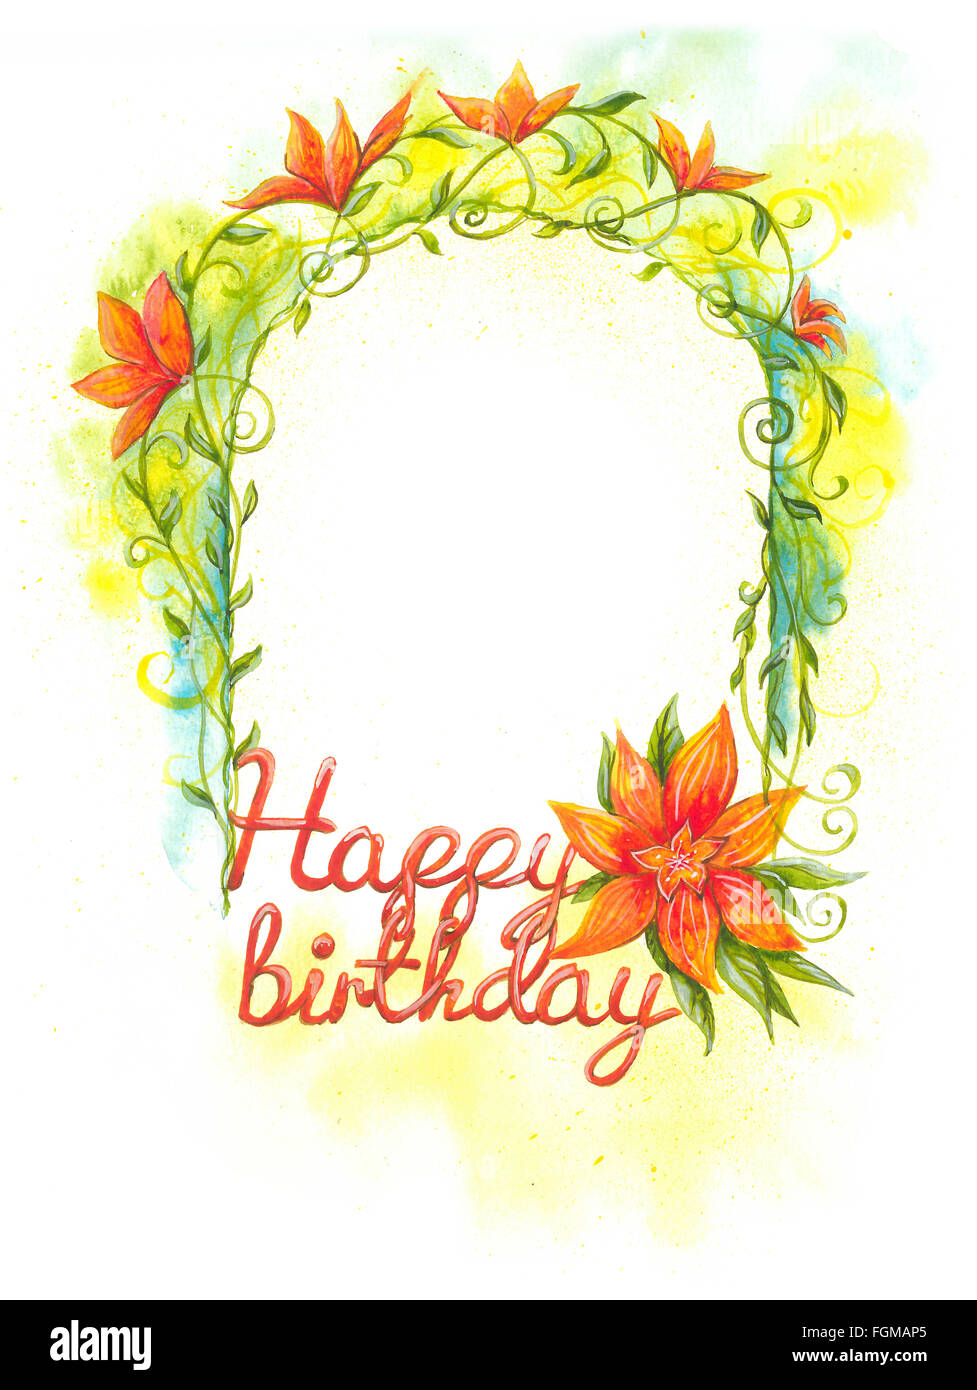 floral frame, happy birthday, watercolor painting art Stock Photo ...